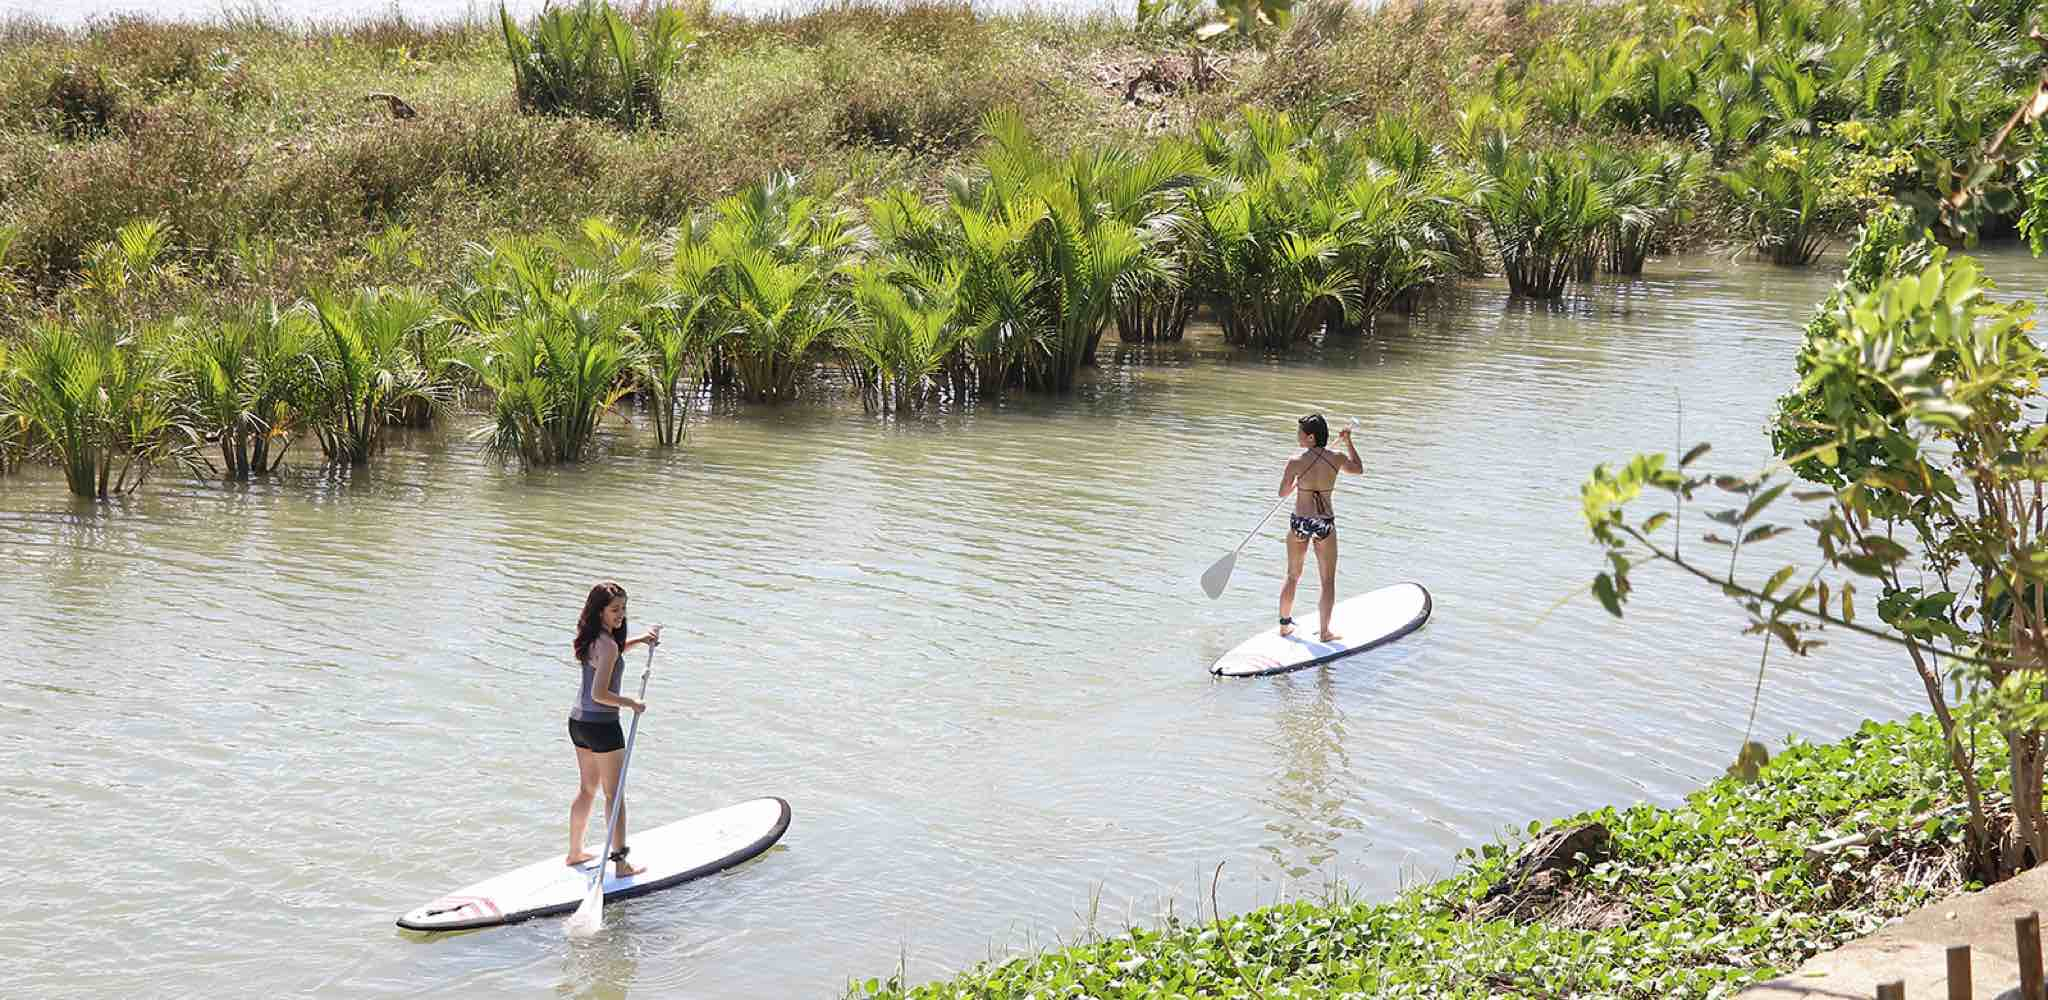 Baler - Going on a Paddle Board River Adventure